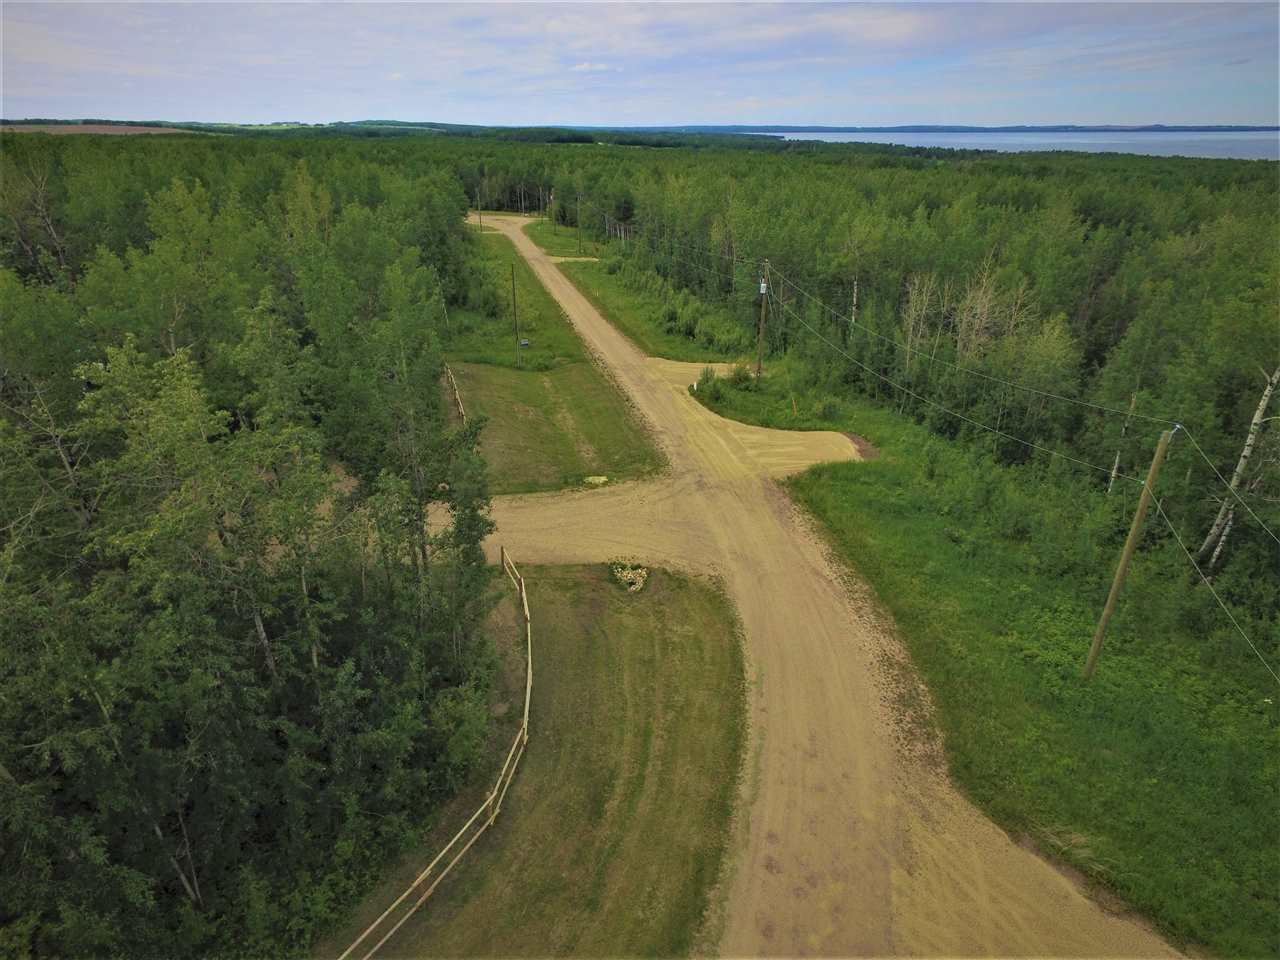 Photo 4: Photos: 11 13070 TWP RD 464: Rural Wetaskiwin County Rural Land/Vacant Lot for sale : MLS®# E4169948